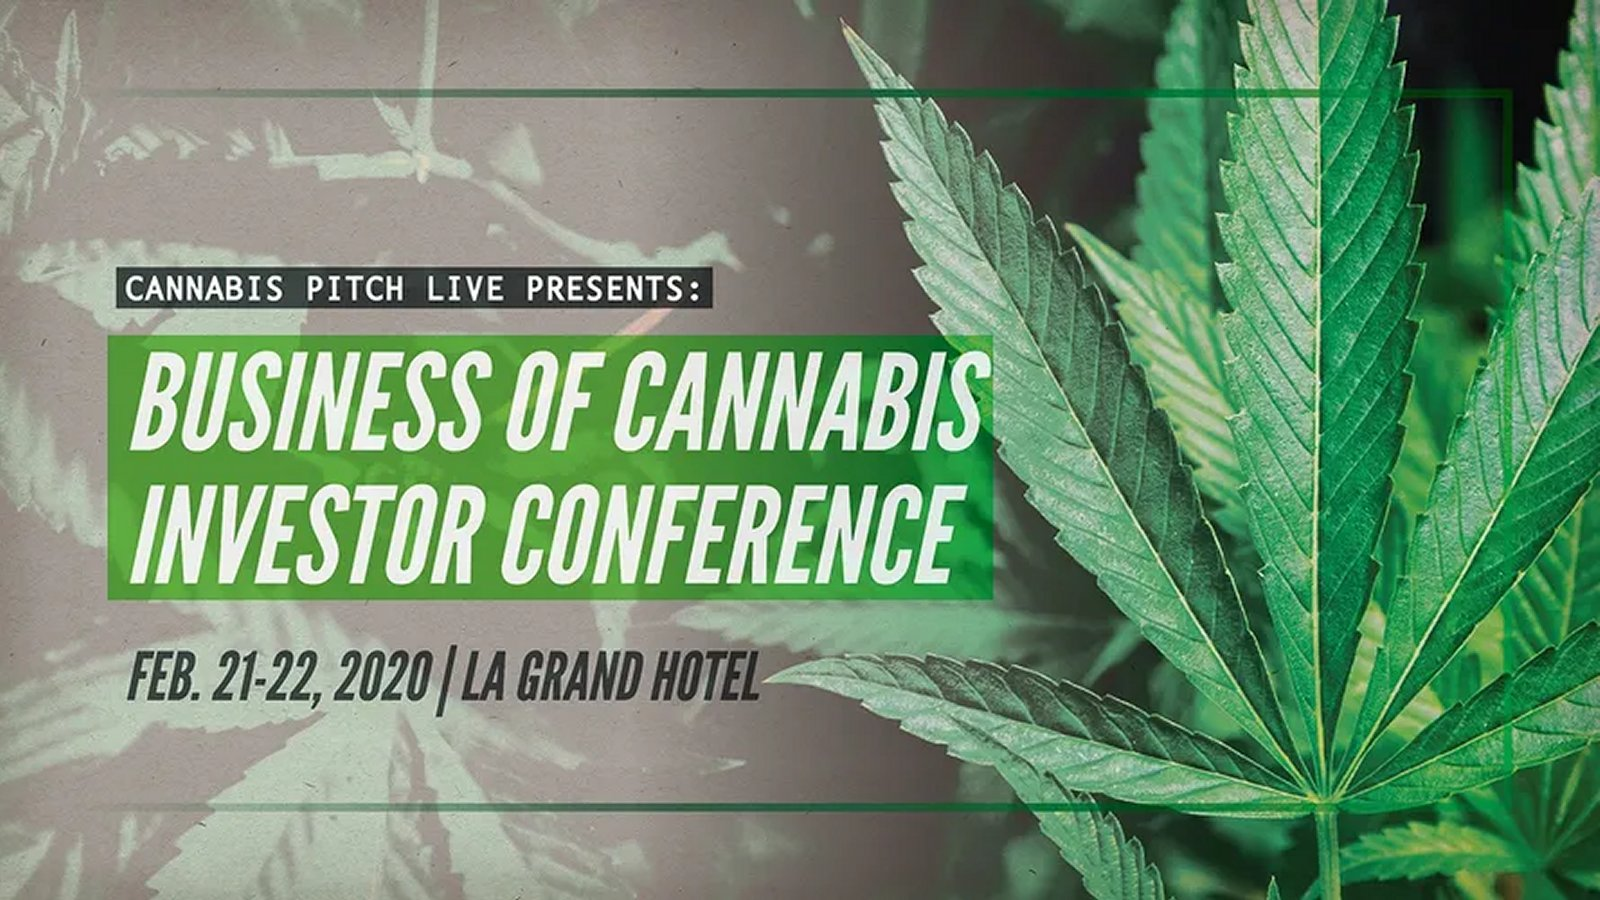 Cannabis Pitch Live, Los Angeles February 21-22, 2020